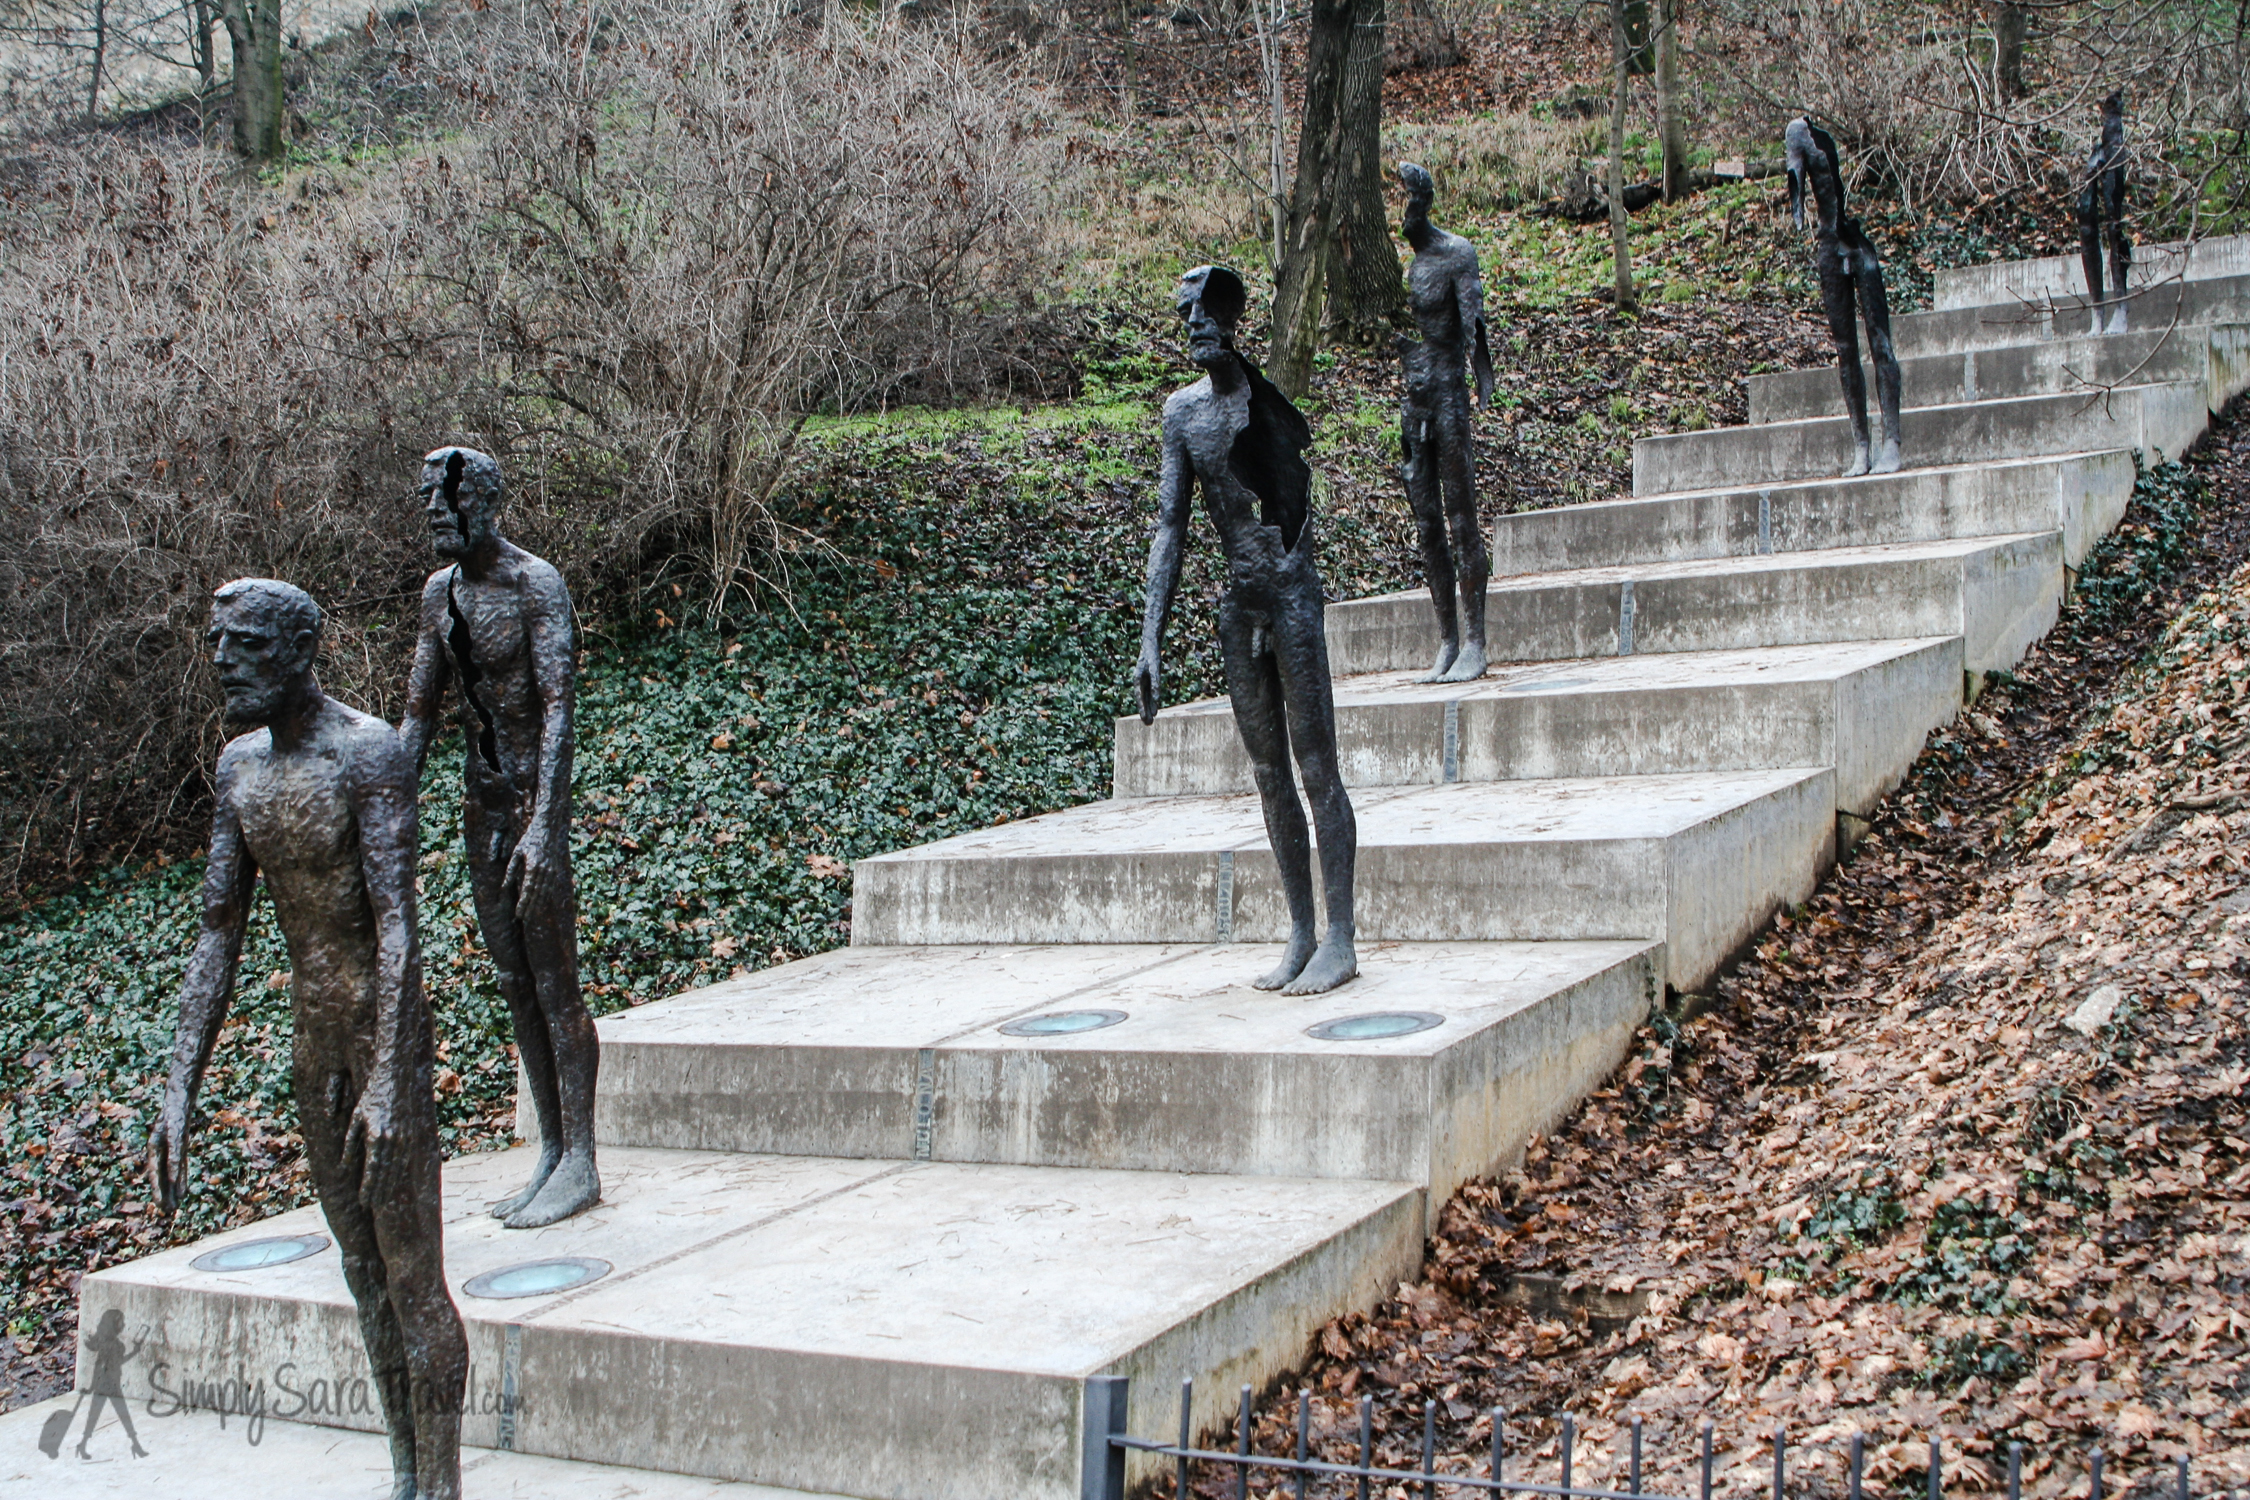 """The plaque nearby reads:""""The memorial to the victims of communism is dedicated to all victims not only those who were jailed or executed but also those whose lives were ruined by totalitarian despotism"""" ( see Wikipedia )."""